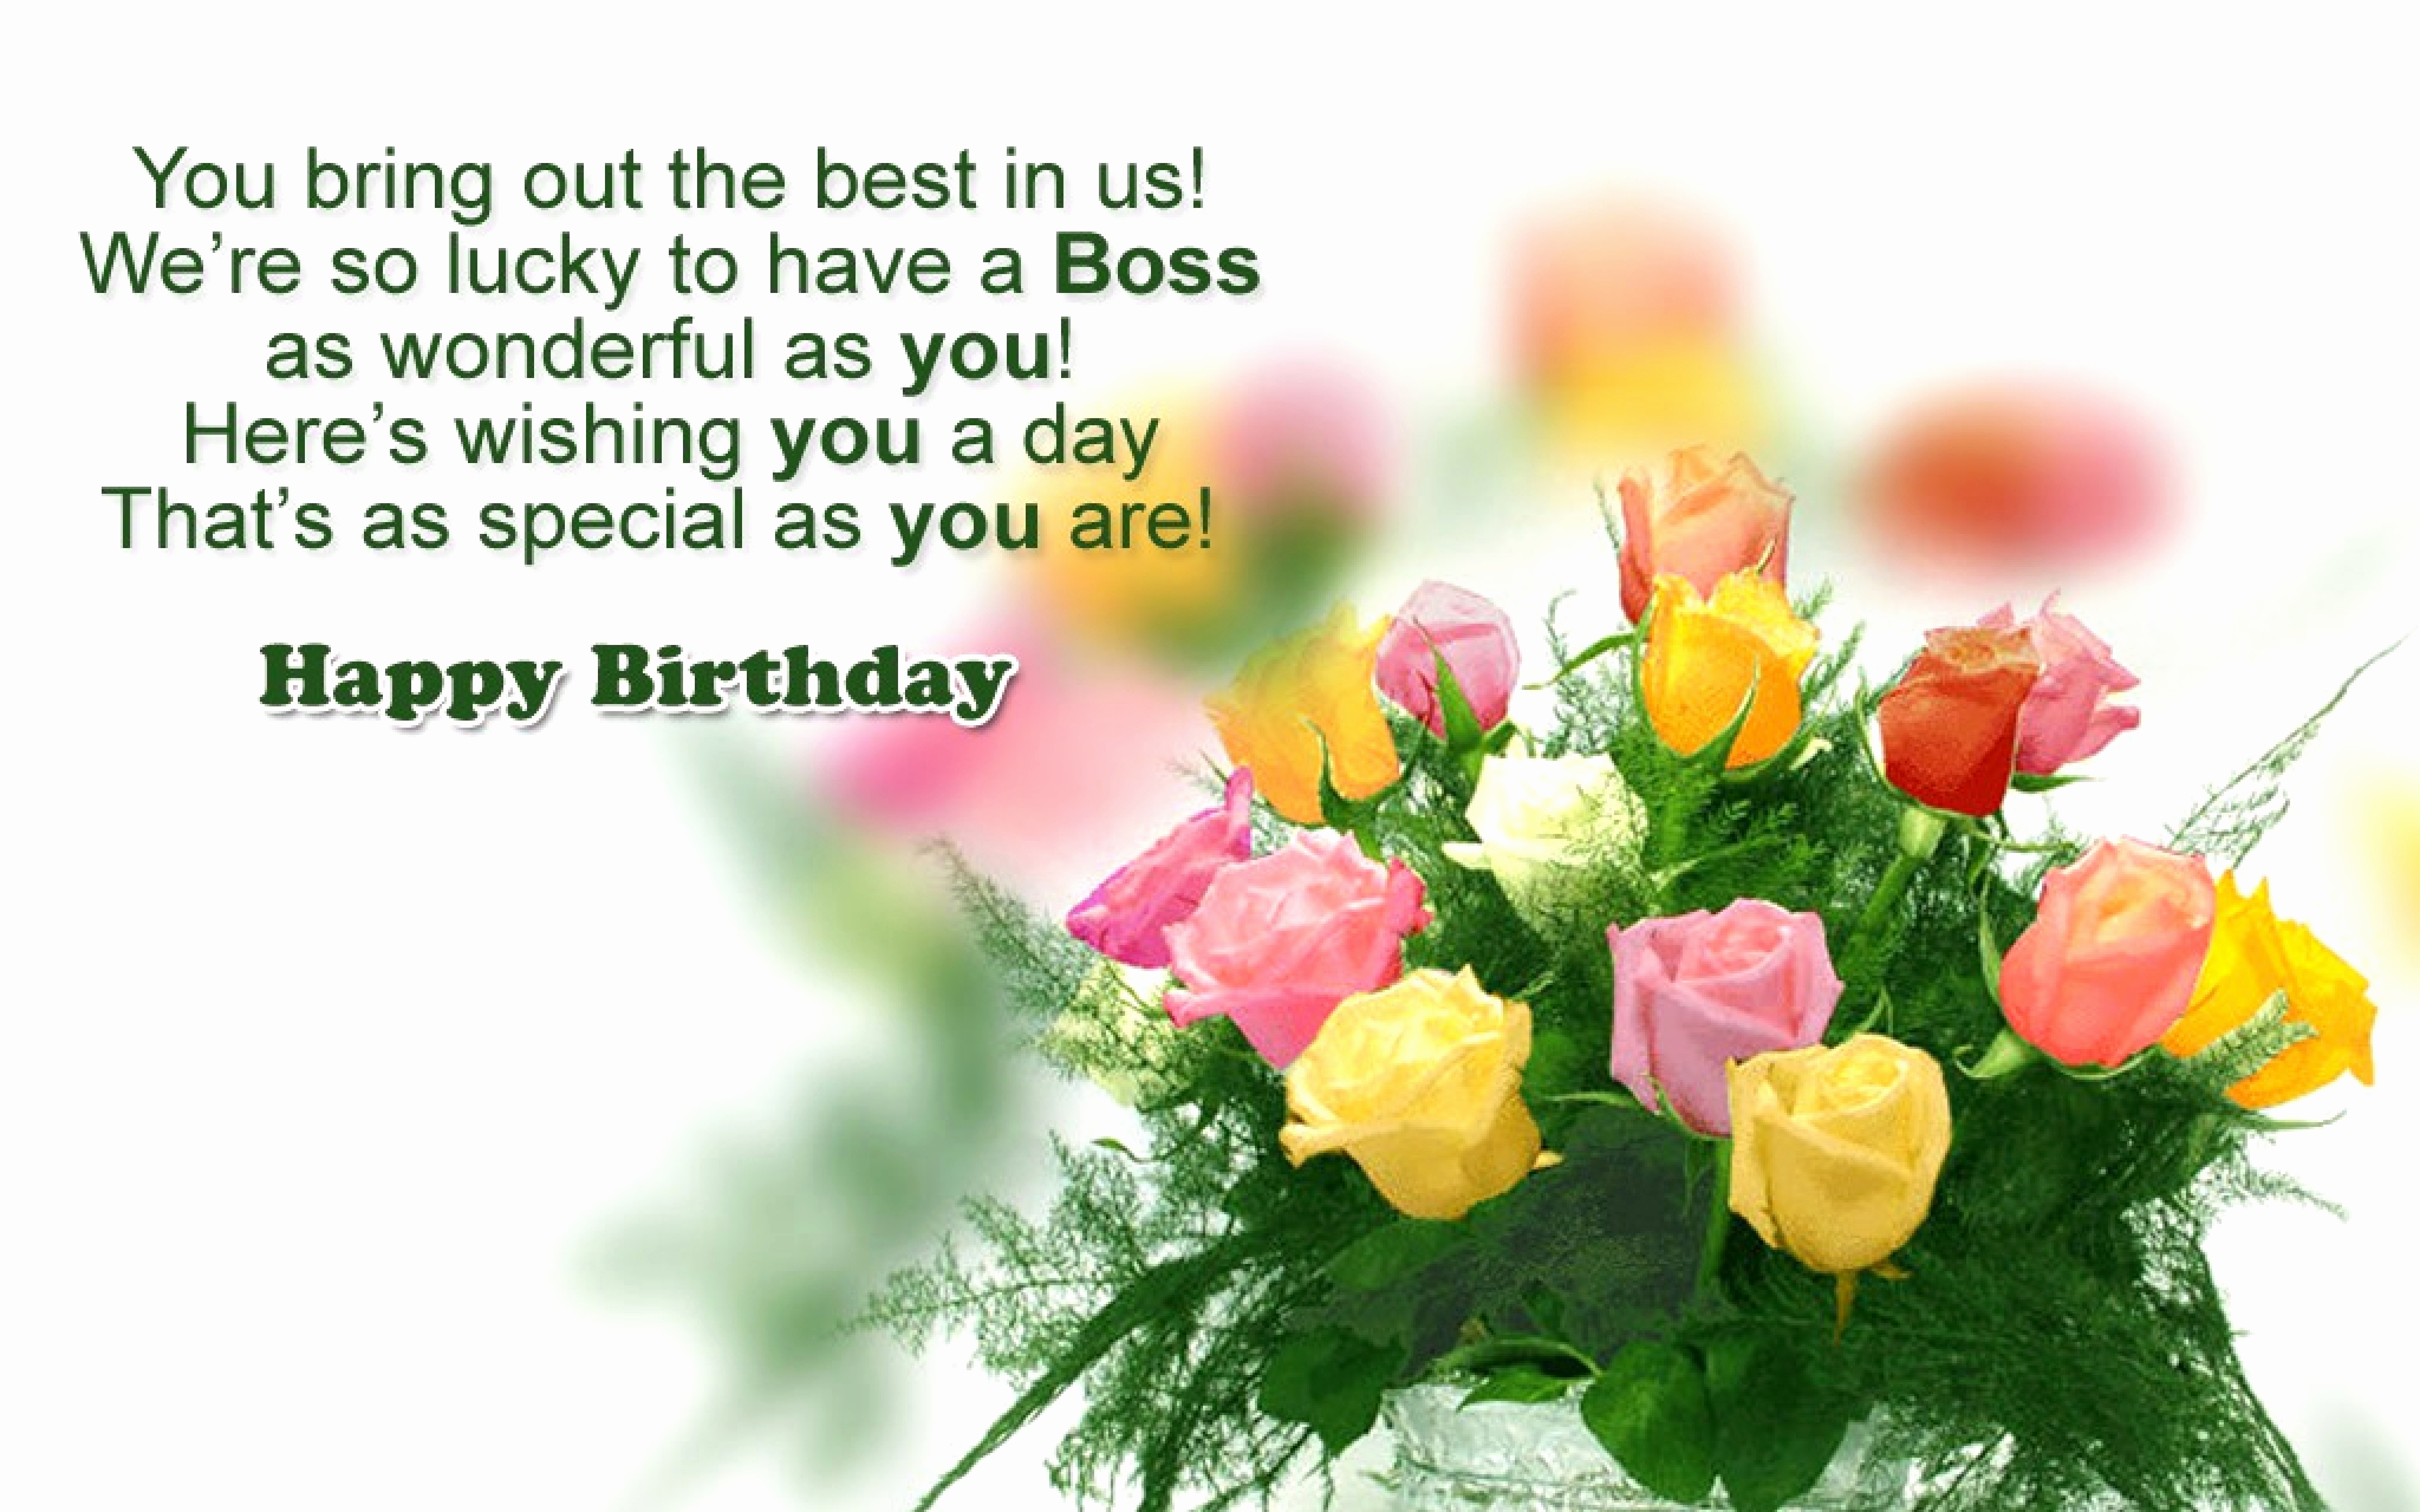 special friend birthday card message ; 21st-birthday-card-messages-new-76-best-friends-birthday-messages-for-cards-of-21st-birthday-card-messages